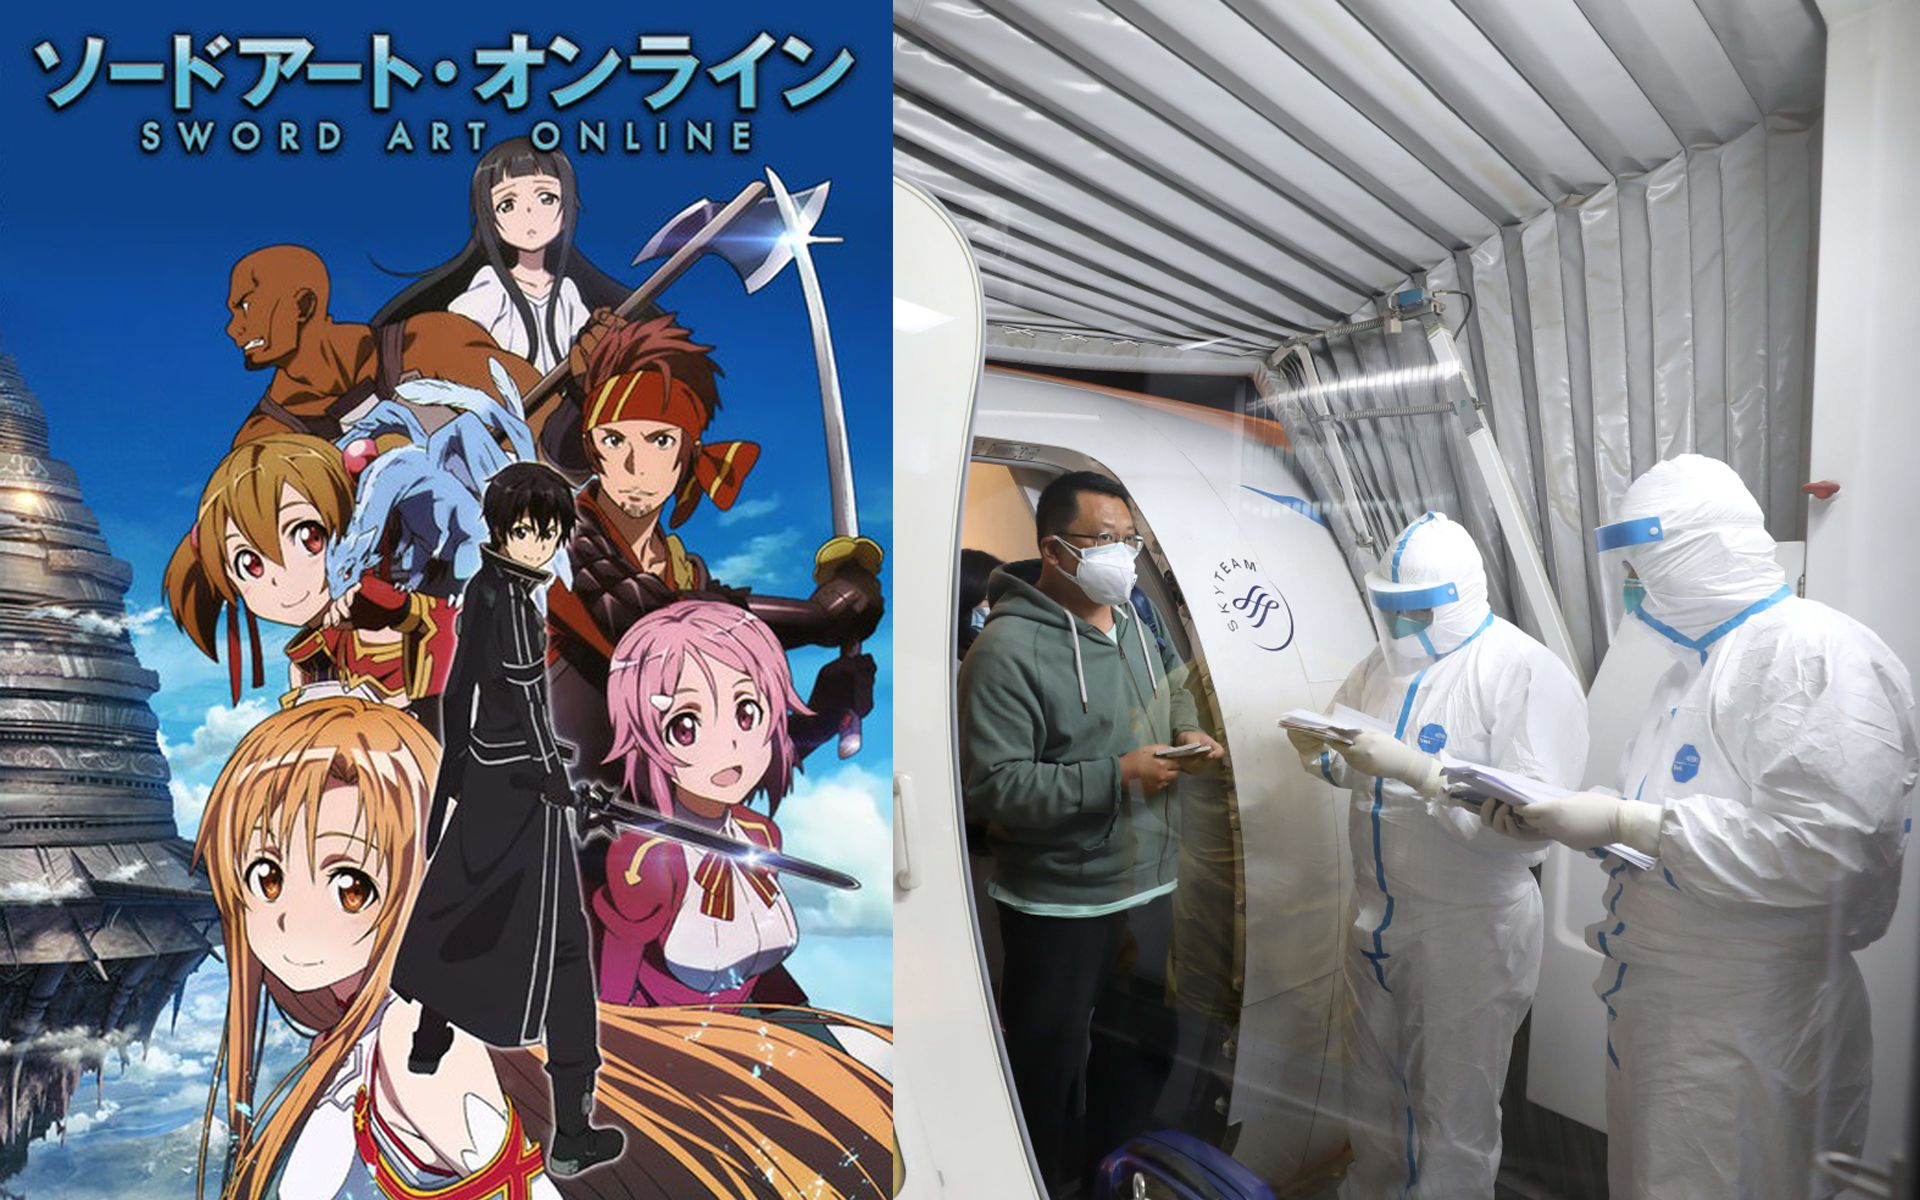 BREAKING: United States Declares Public Health Emergency Over Outbreak Of Sword Art Online Fans